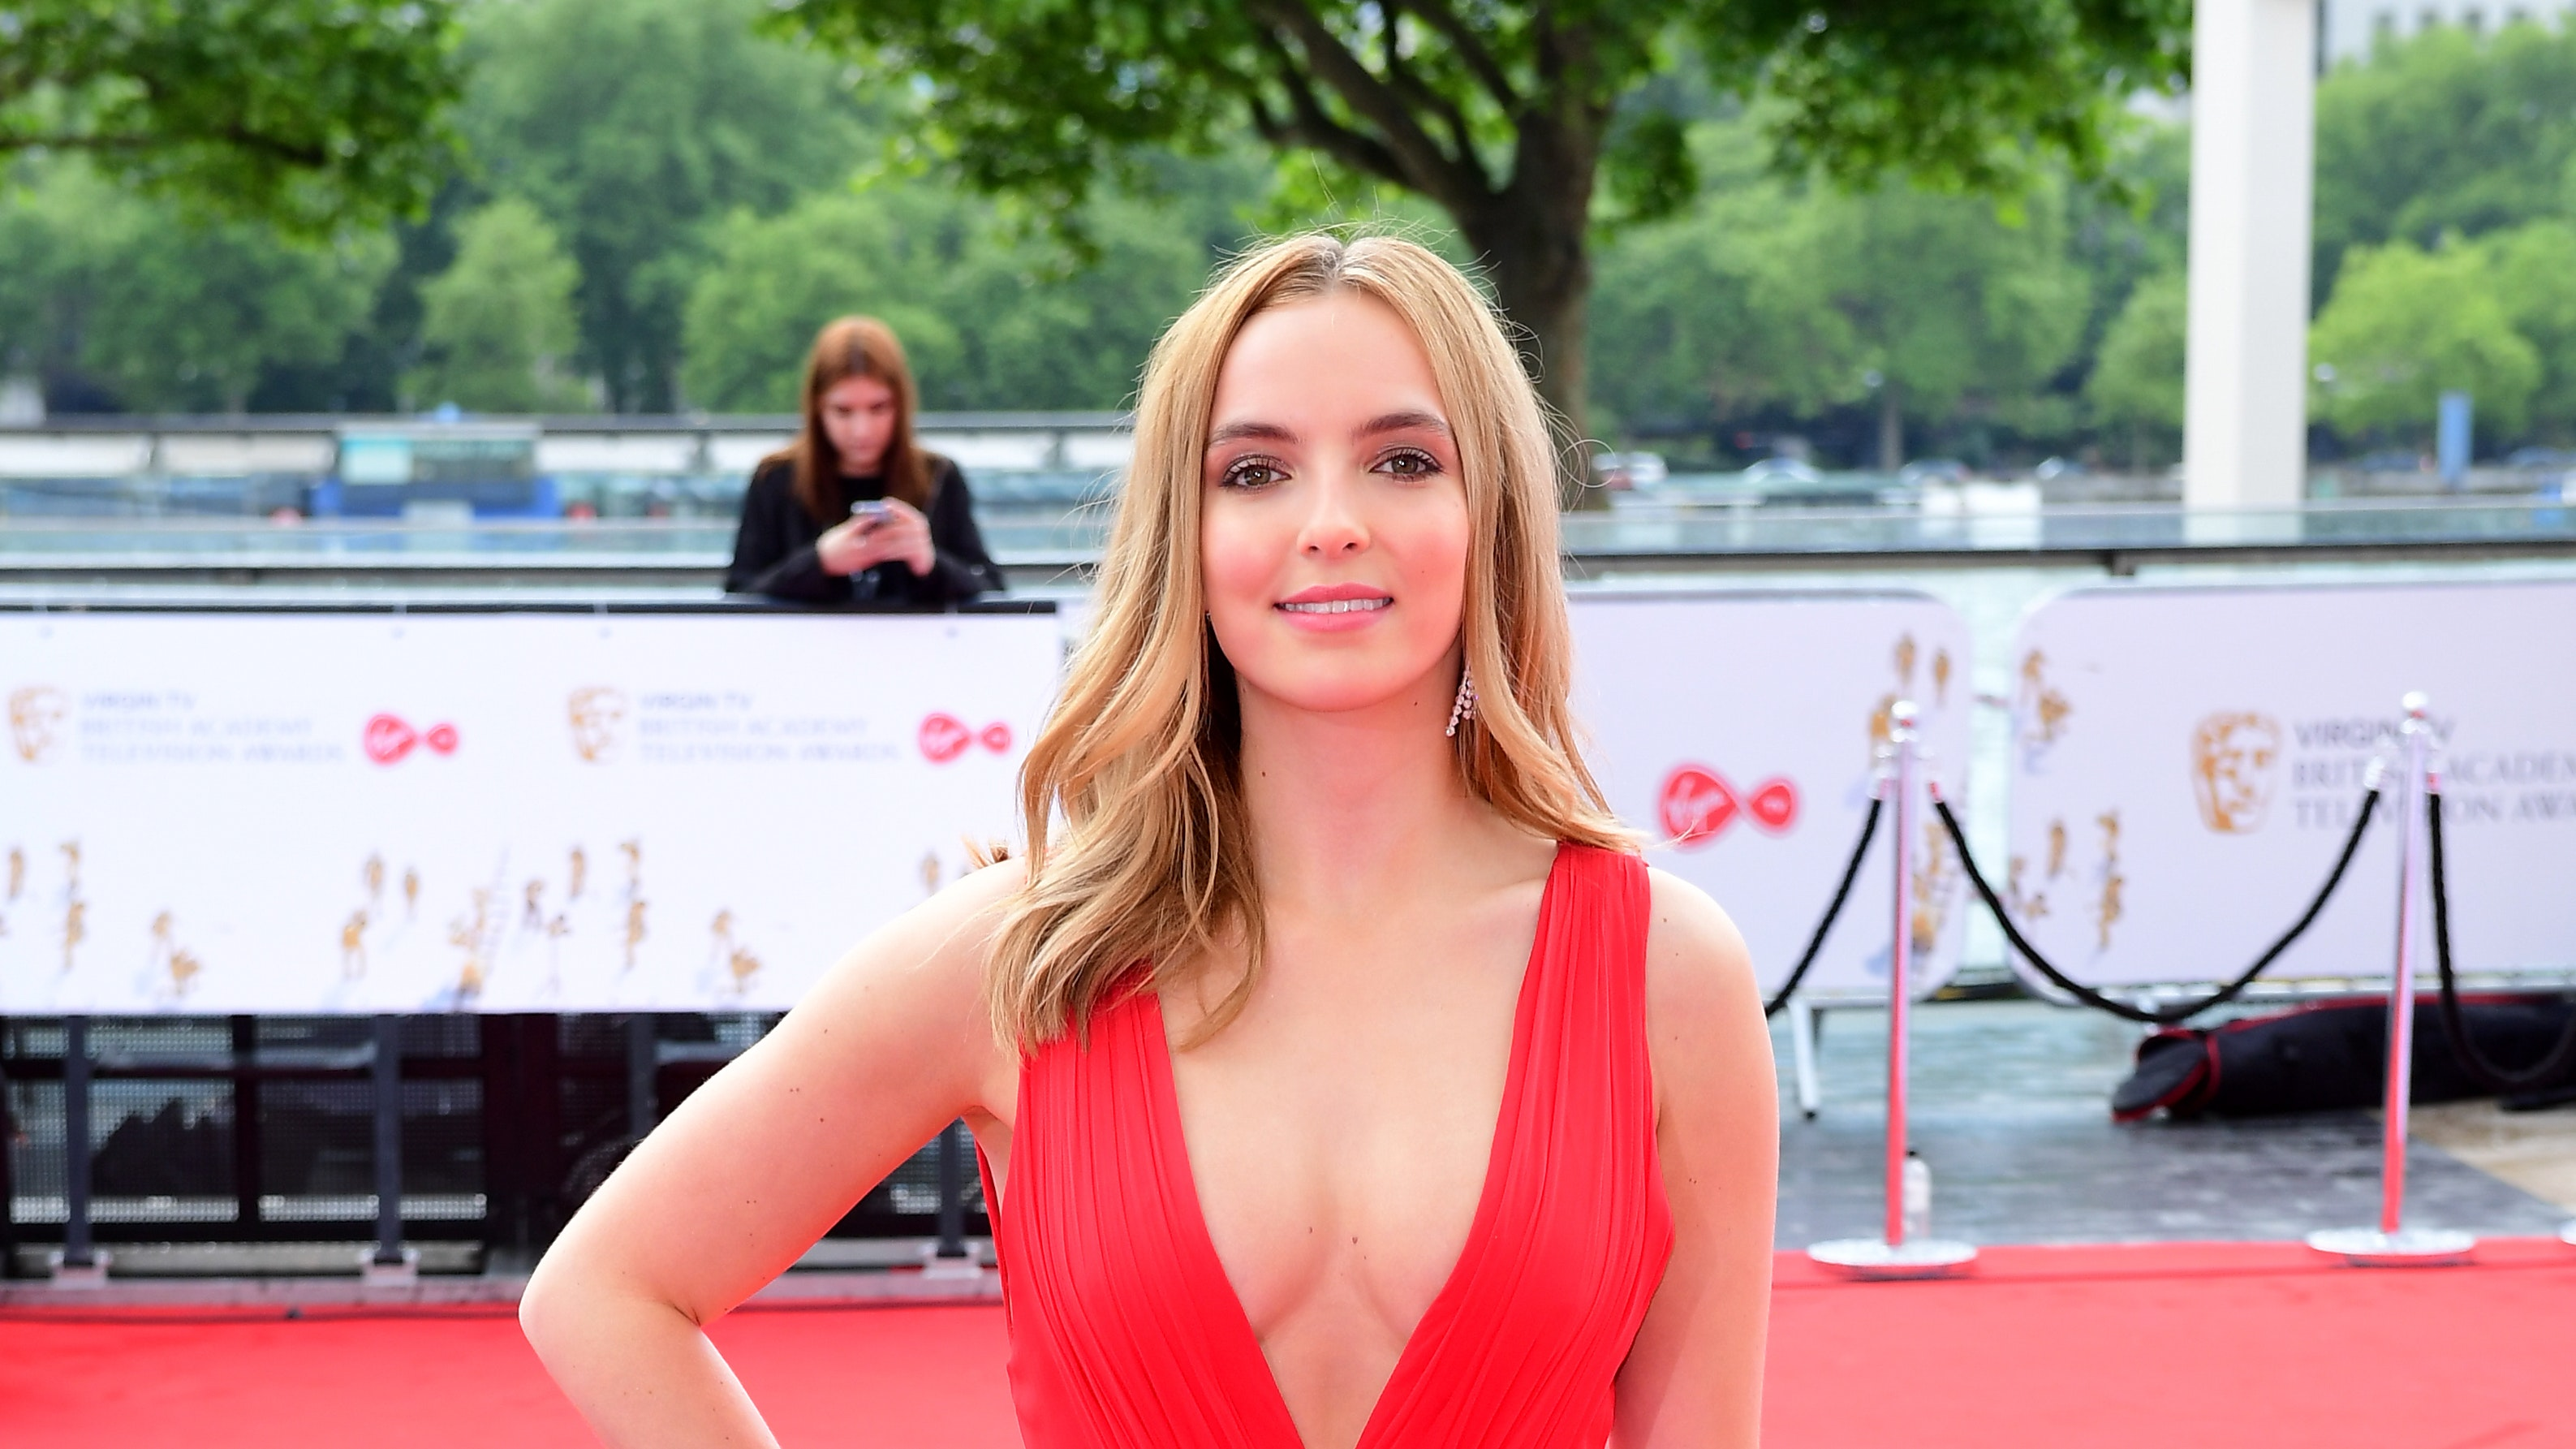 Celebrity Jodie Comer nudes (21 foto and video), Ass, Sideboobs, Twitter, cleavage 2018